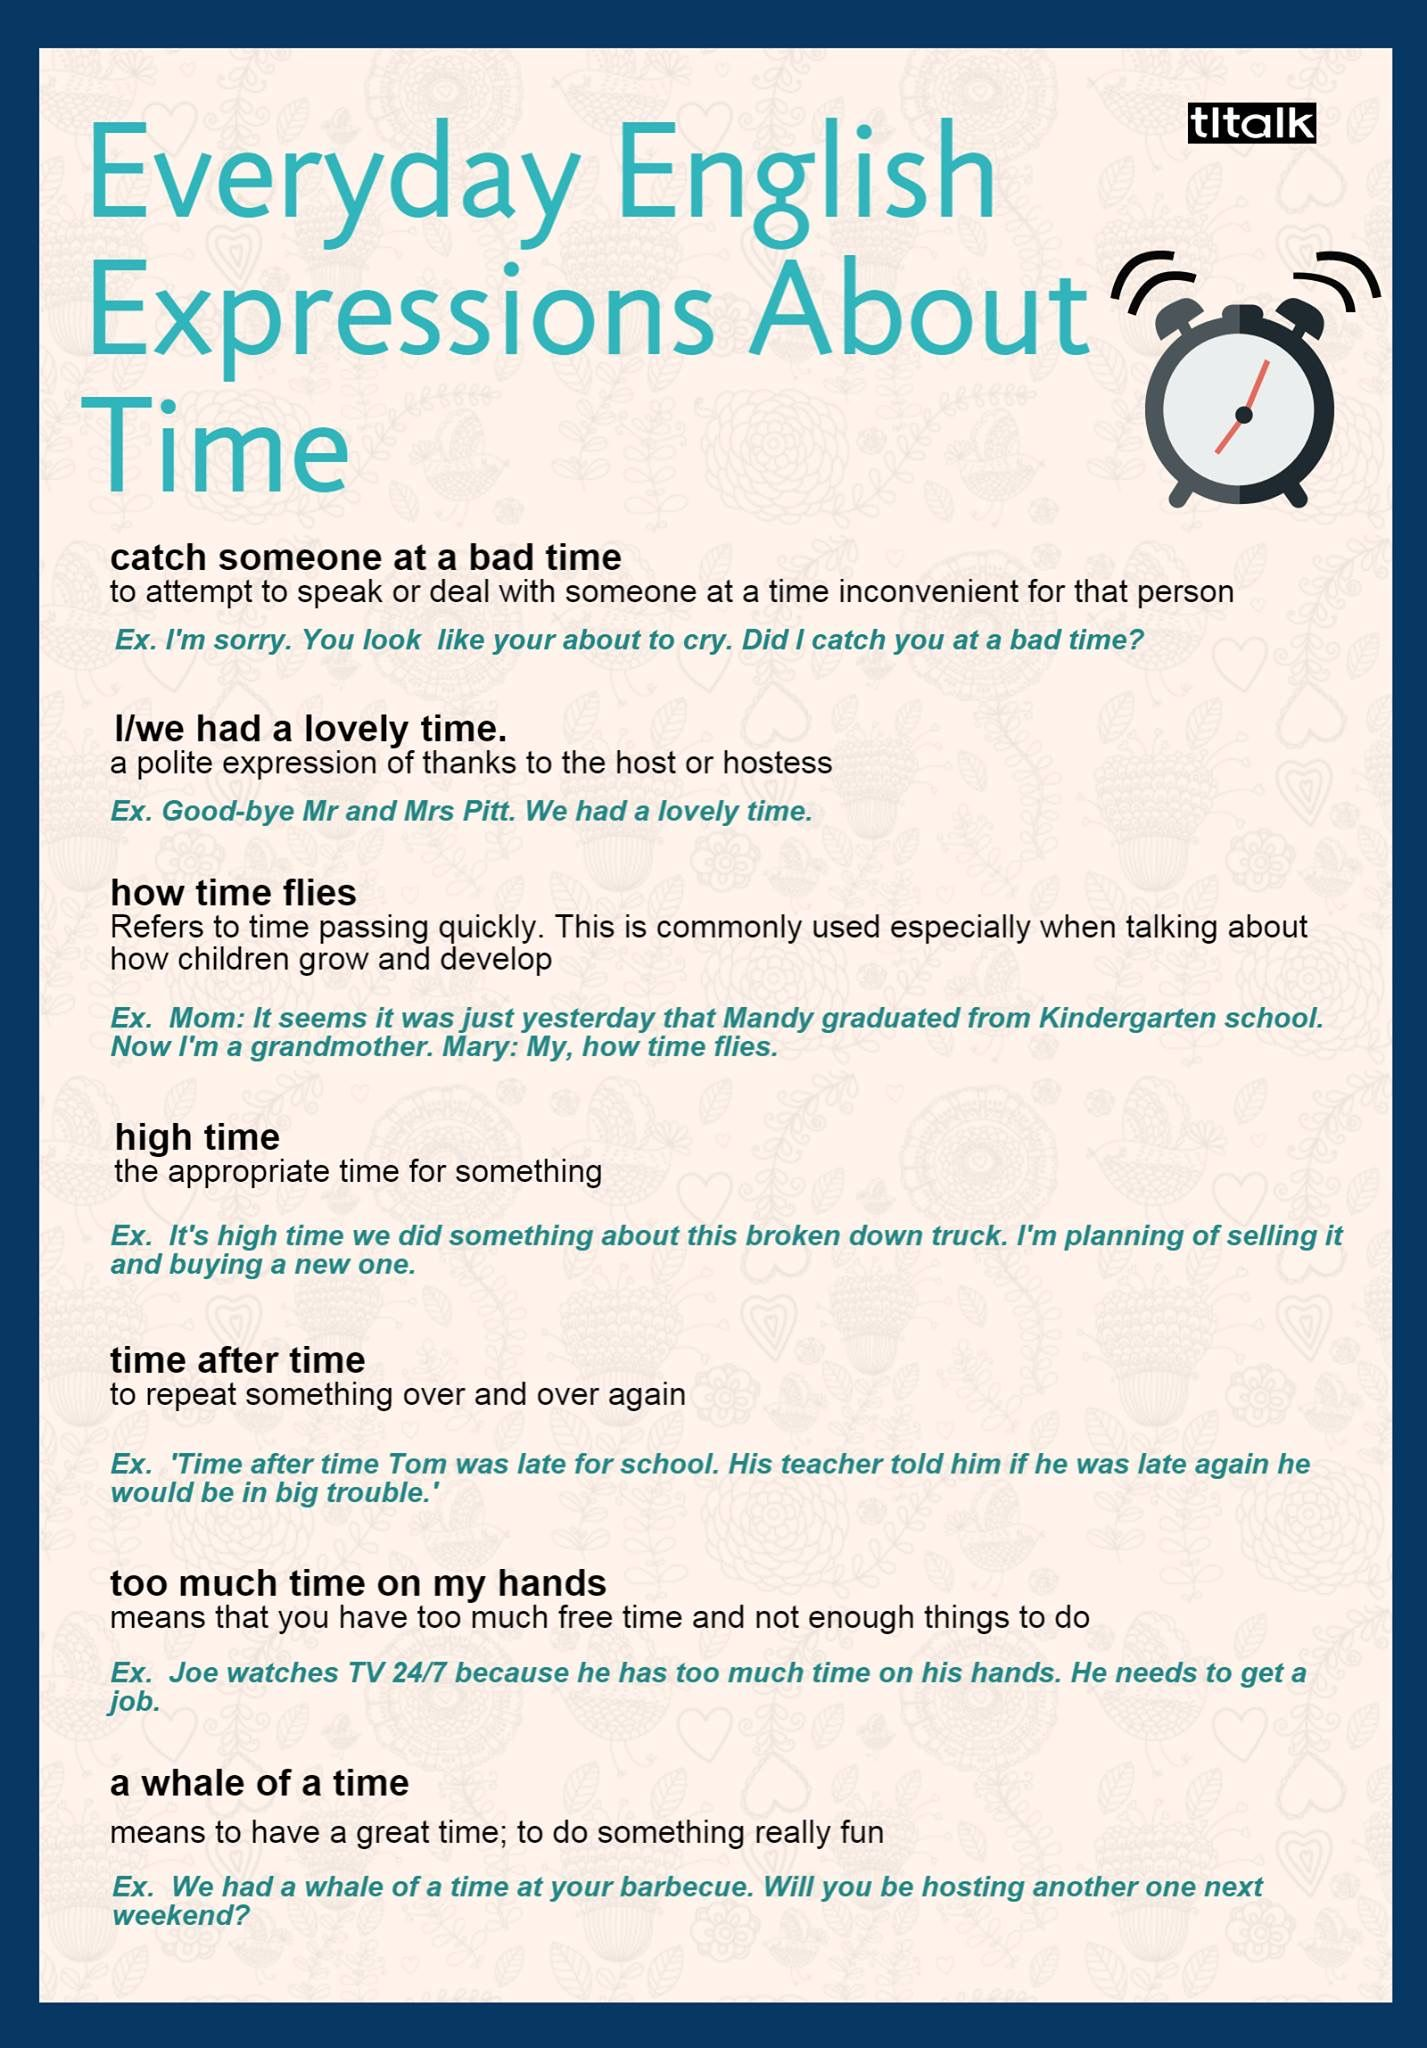 Everyday English Expressions About Time | English Language ...